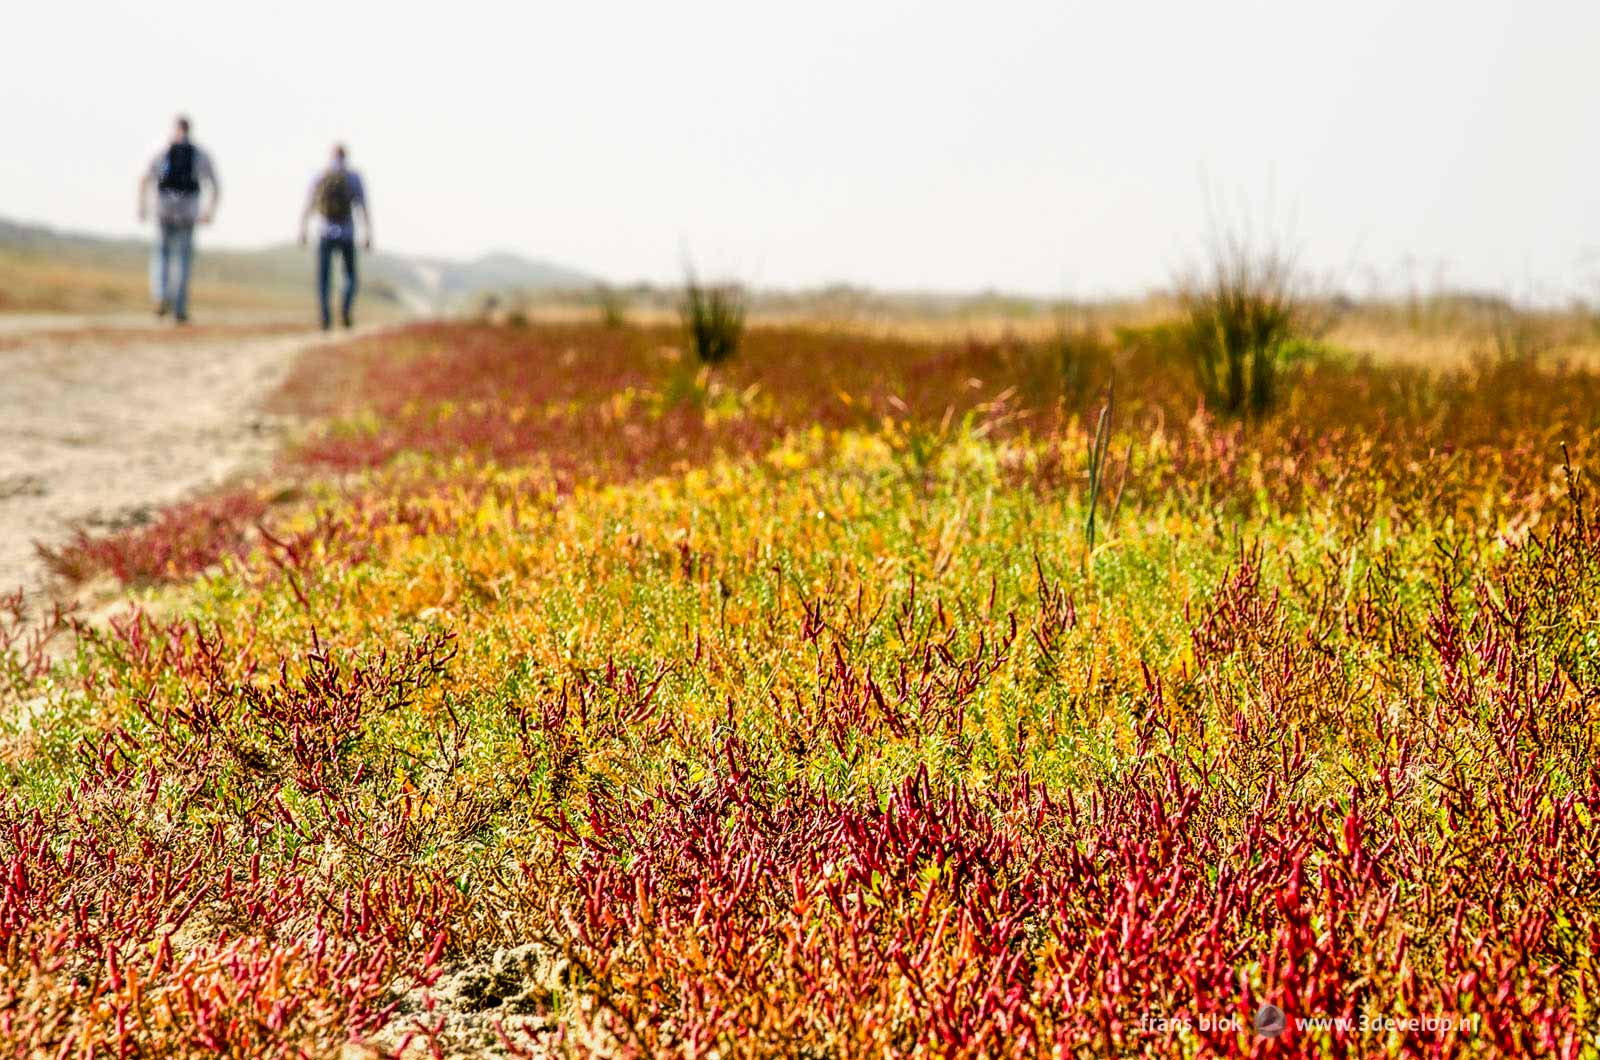 Field of salicornia in the rasta colors red, green and yellow at the beach in nature reserve Kwade Hoek on the island of Goeree-Overflakkee, with two hikers in the background